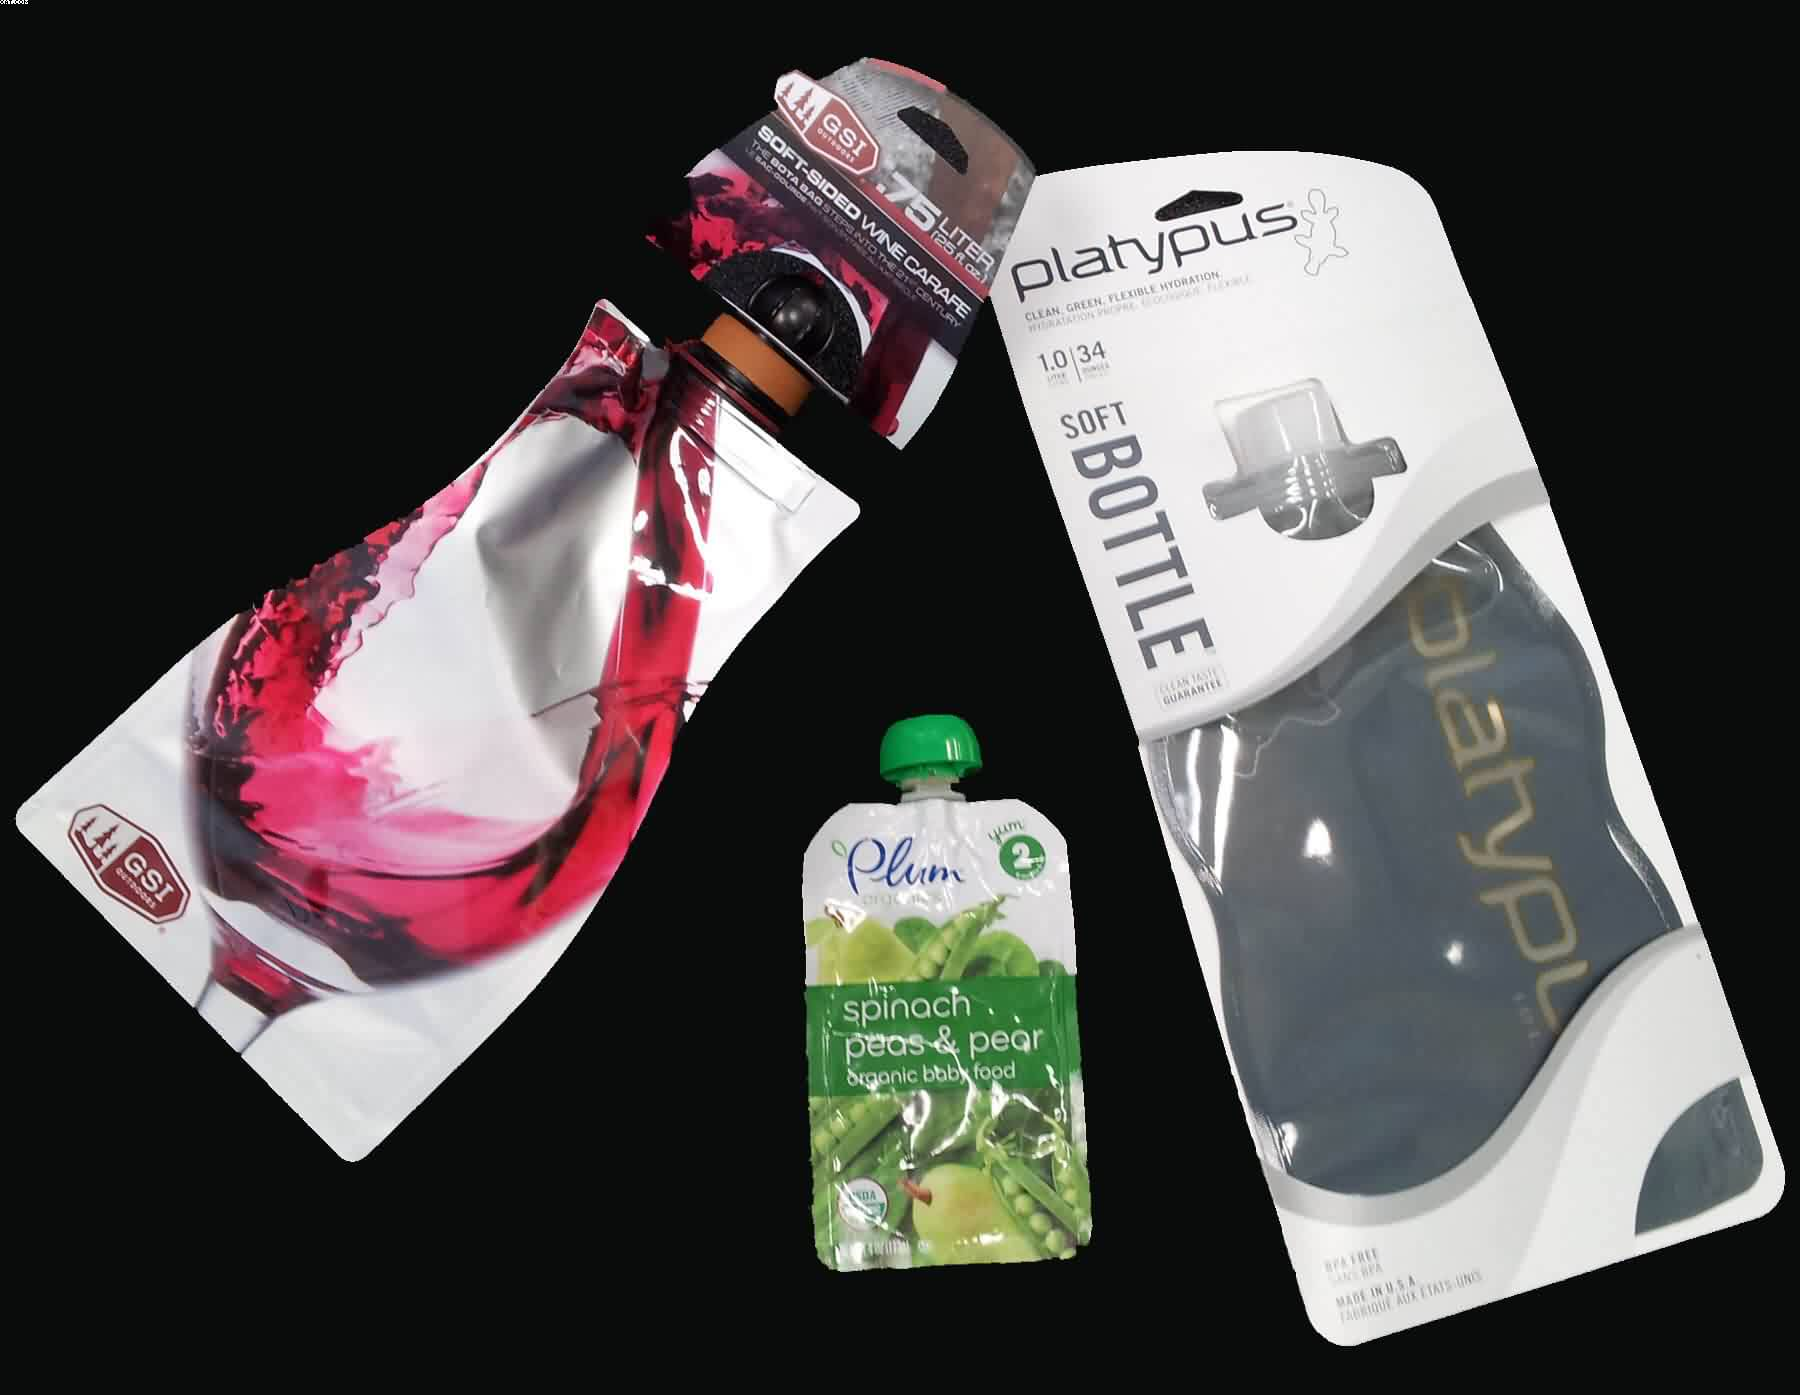 consumer fluid bag products